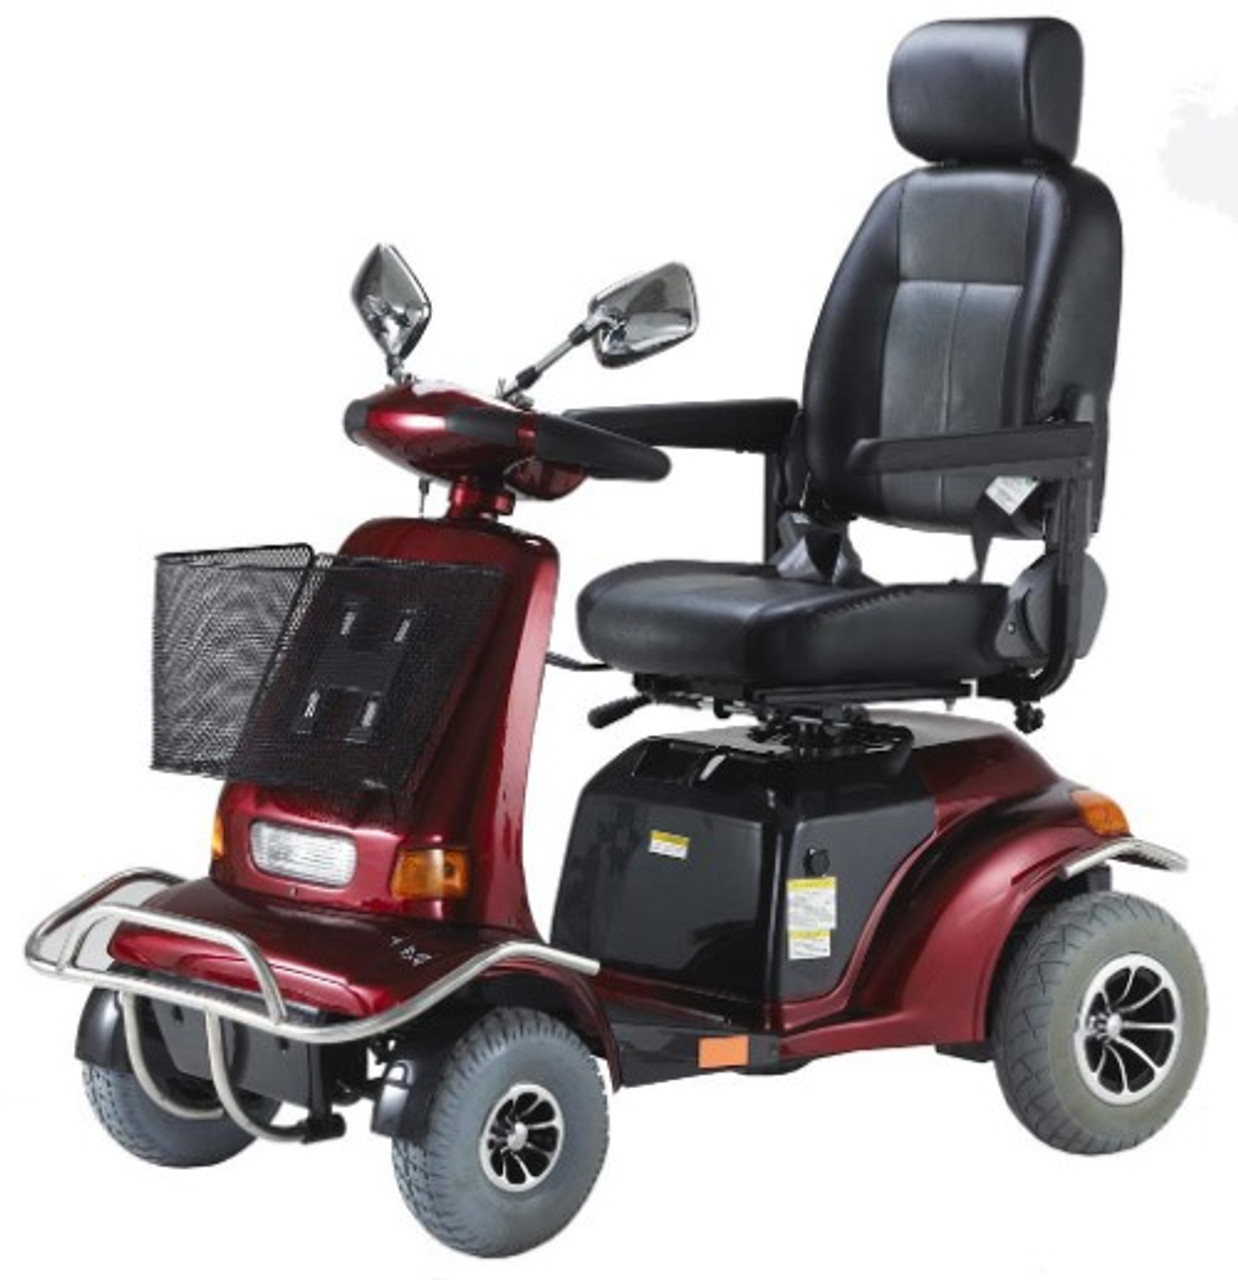 Typical large mobility scooter